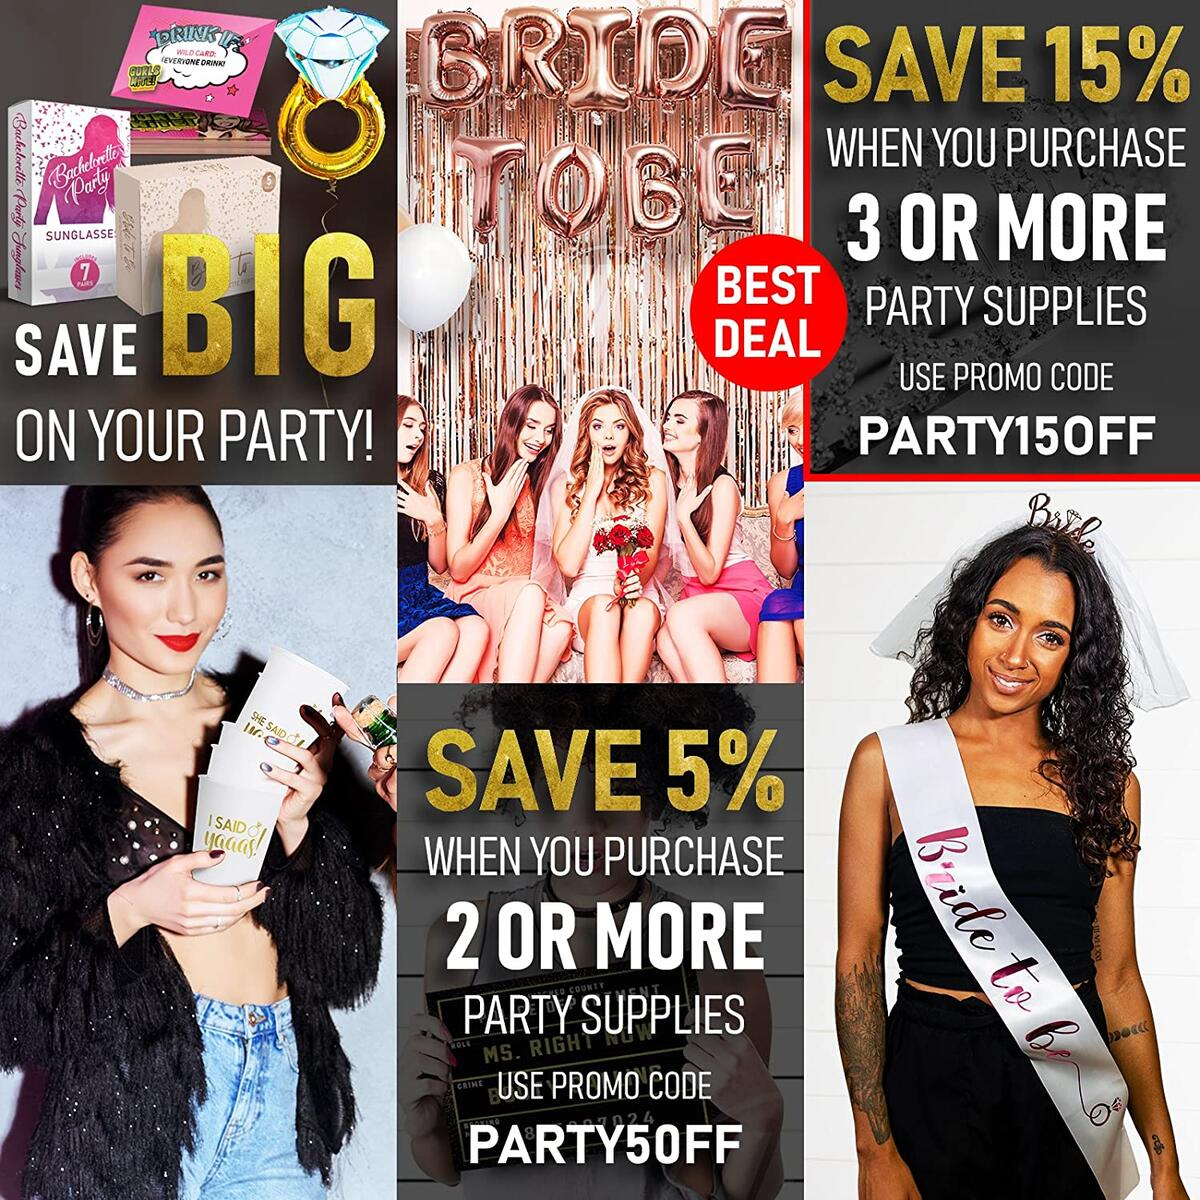 Bachelorette Party Decorations Set - Complete Engagement and Bridal Shower Supplies Kit with Bride To Be Banner, Rose Gold Sash, Bride Tribe Tattoos, Drinking Card Games, Photo Booth Props, Balloons